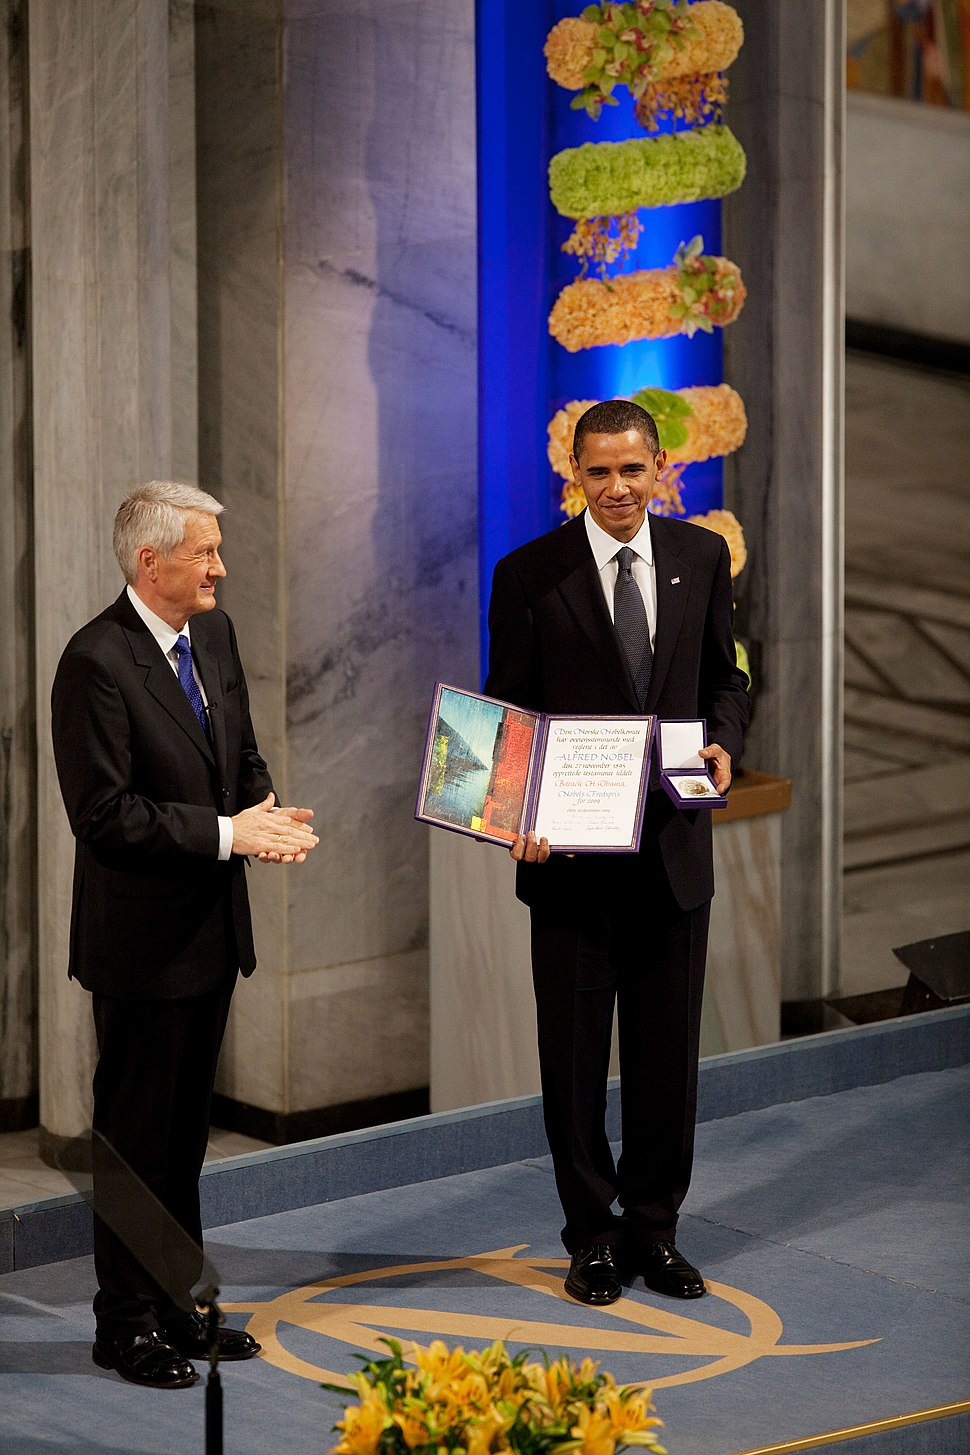 Horbjorn Jagland presents President Barack Obama with the Nobel Prize medal and diploma